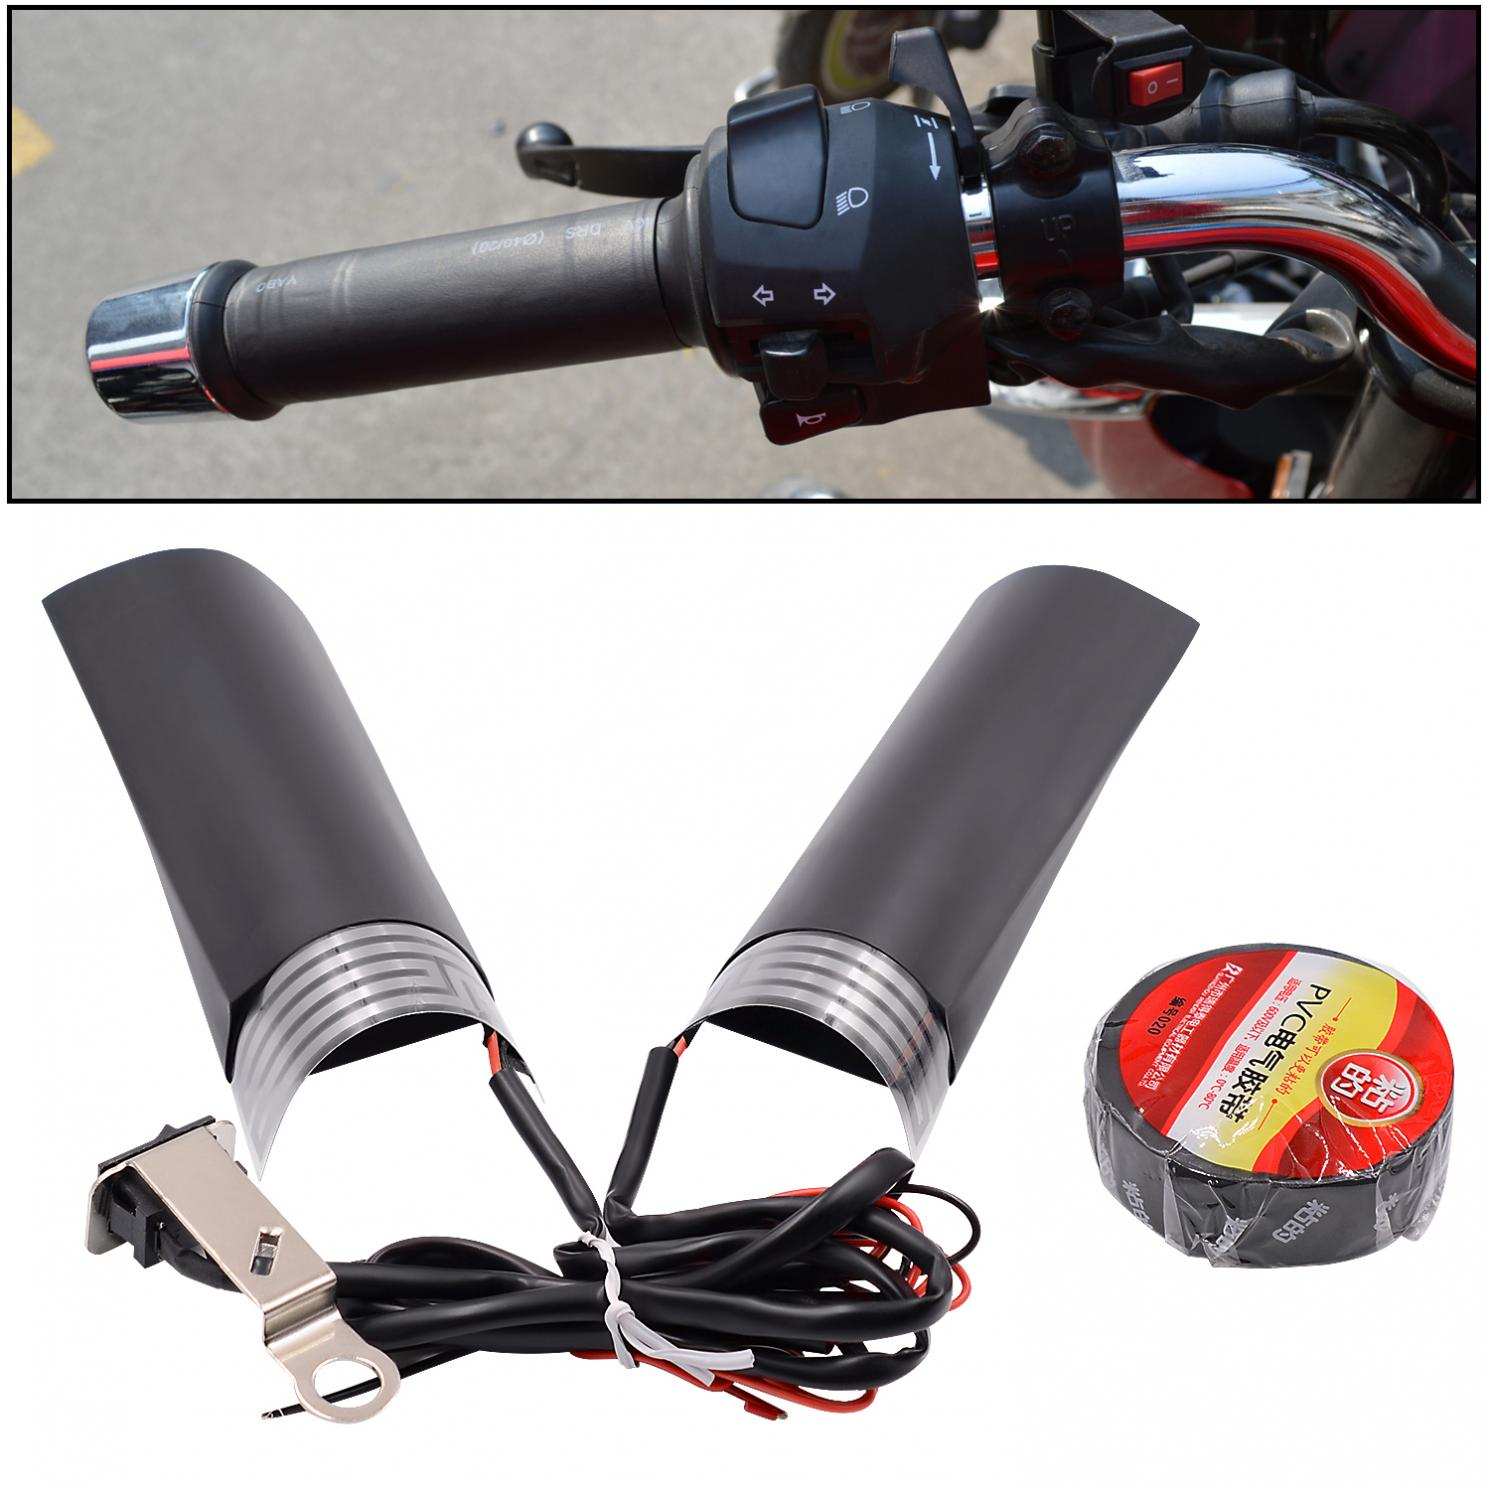 1 Pair 12V 20W Motorcycle Motorbike Handlebar Universal Electric Heating Handle Heated Grips With Adjustable Switch Temperature